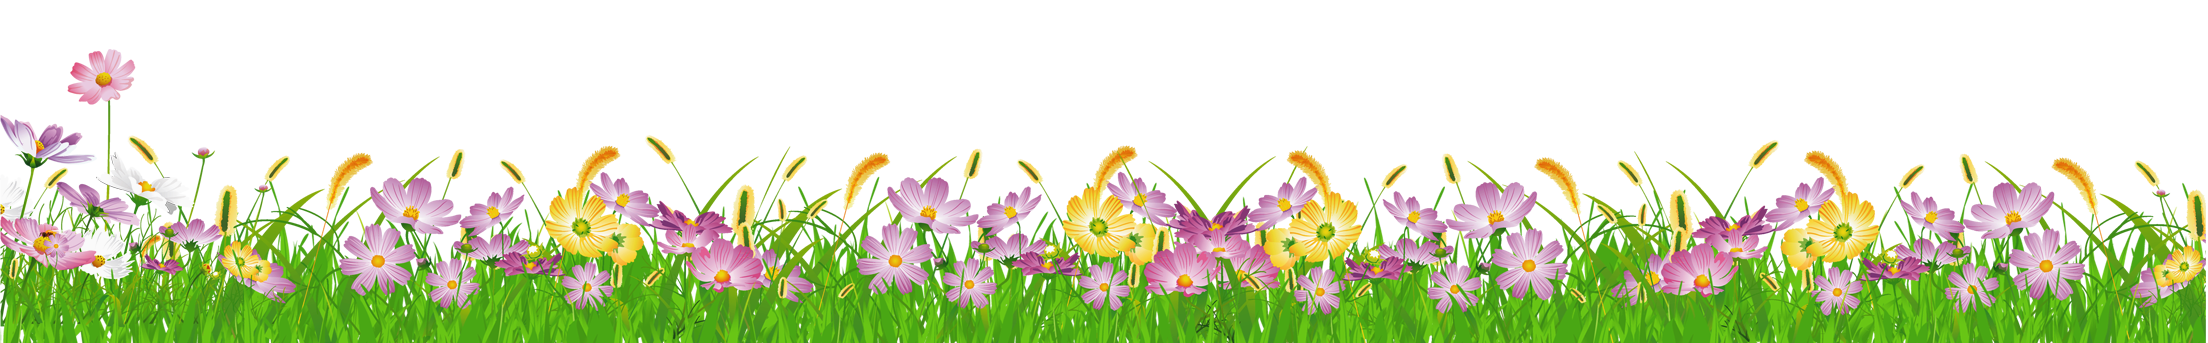 Grass Ground with Pink Flowers PNG Clipart.